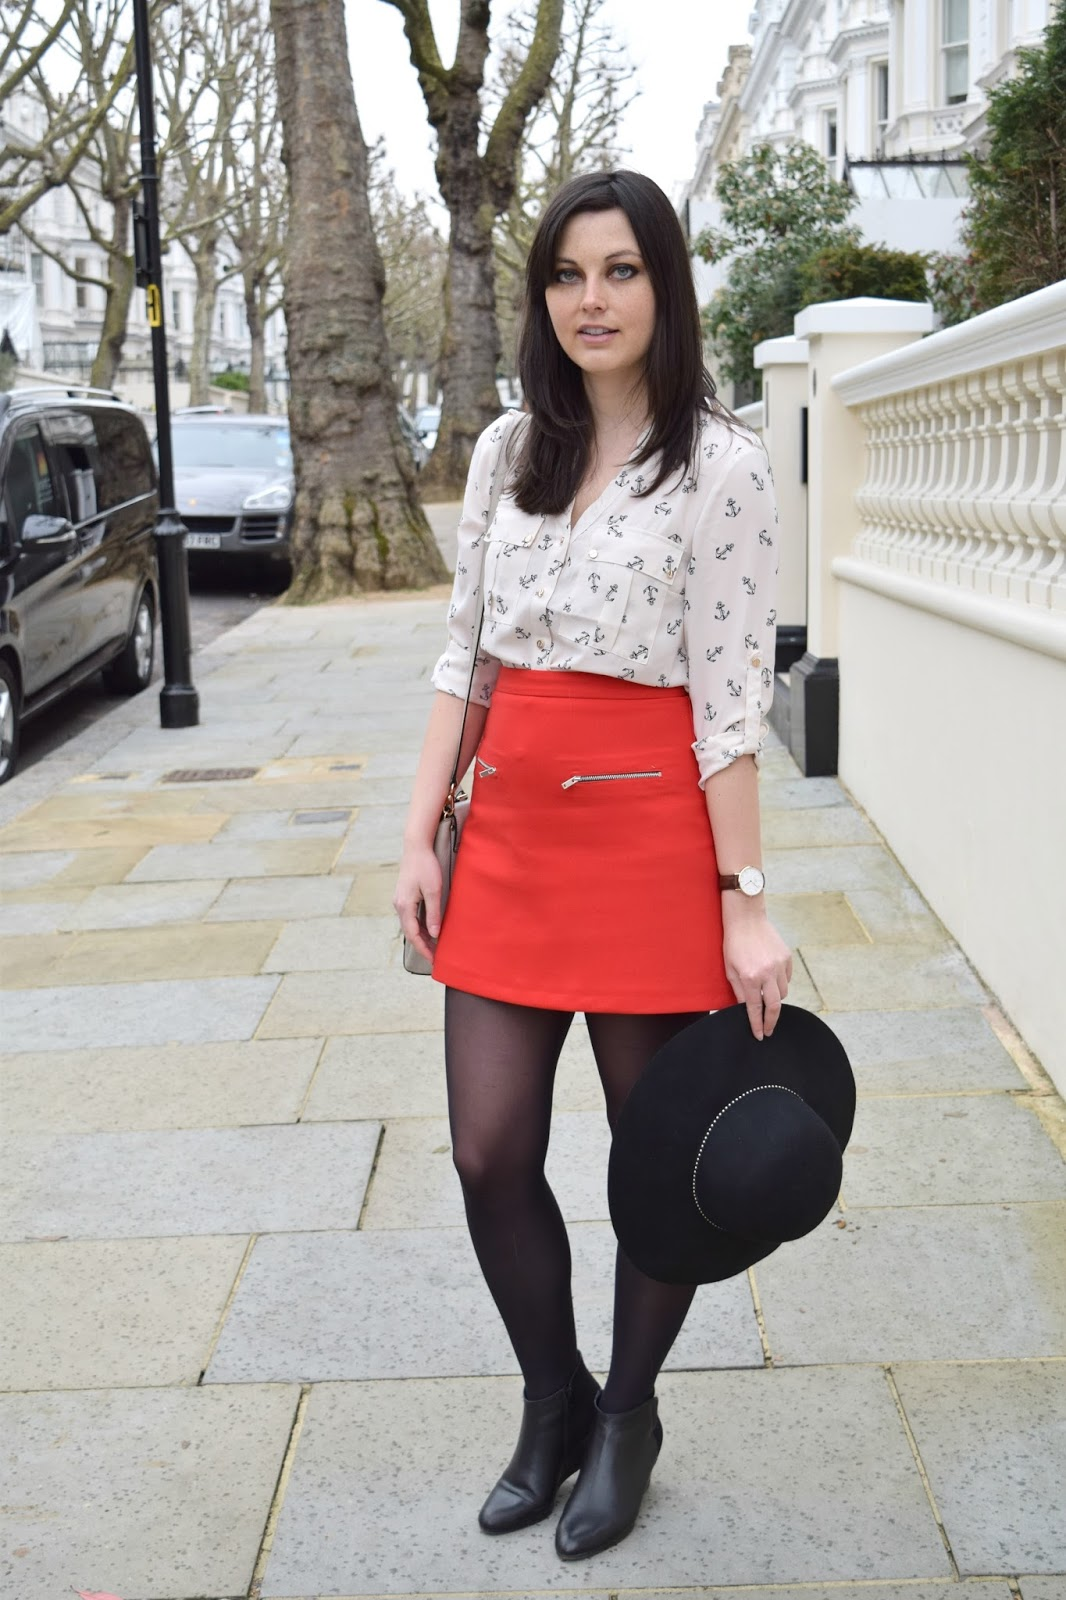 Kensington blogger fashion post